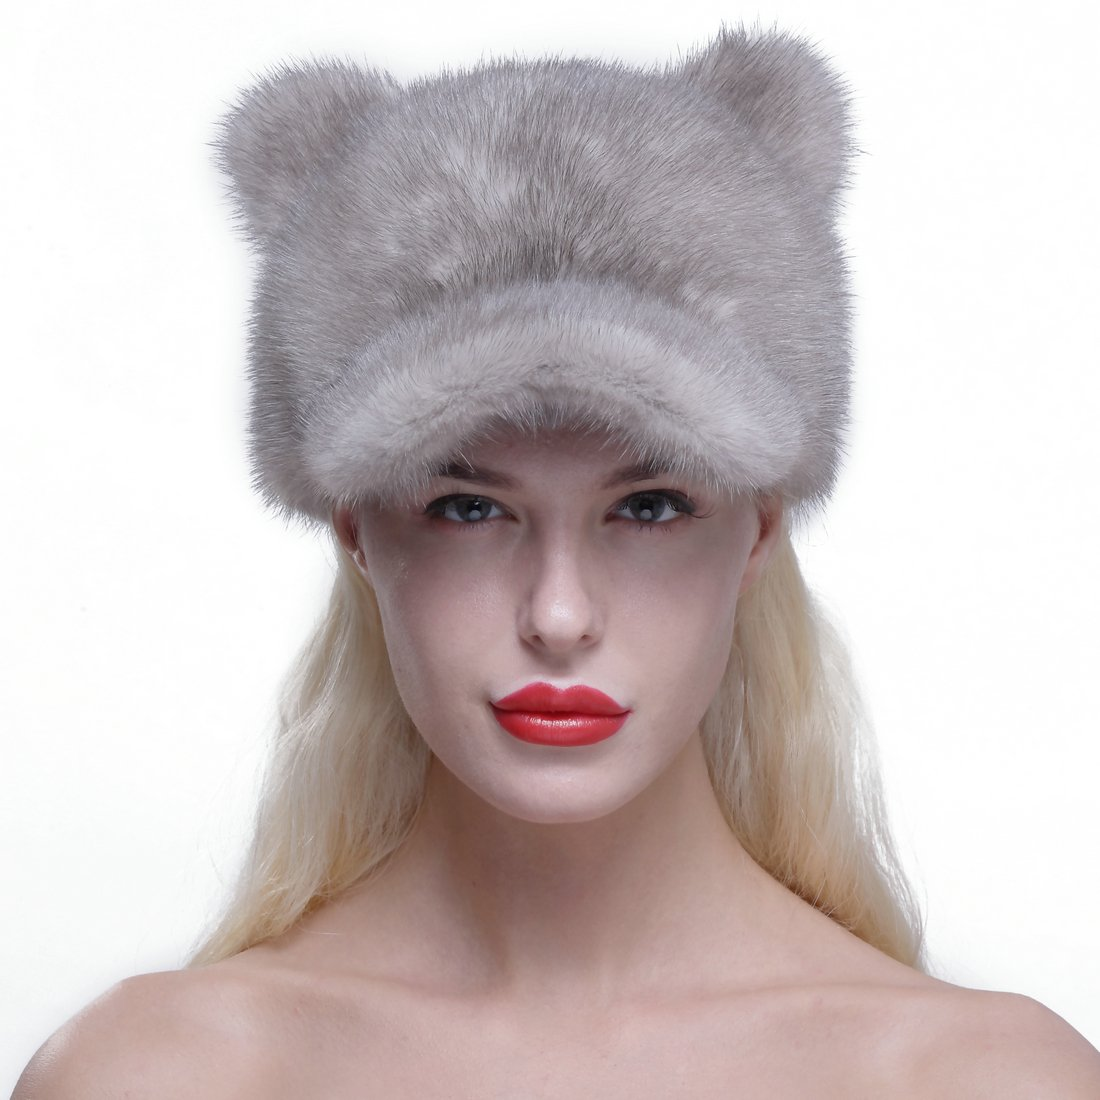 URSFUR Genuine Mink Fur Baseball Cap Soft Cat Ears Women Winter Hat Gray